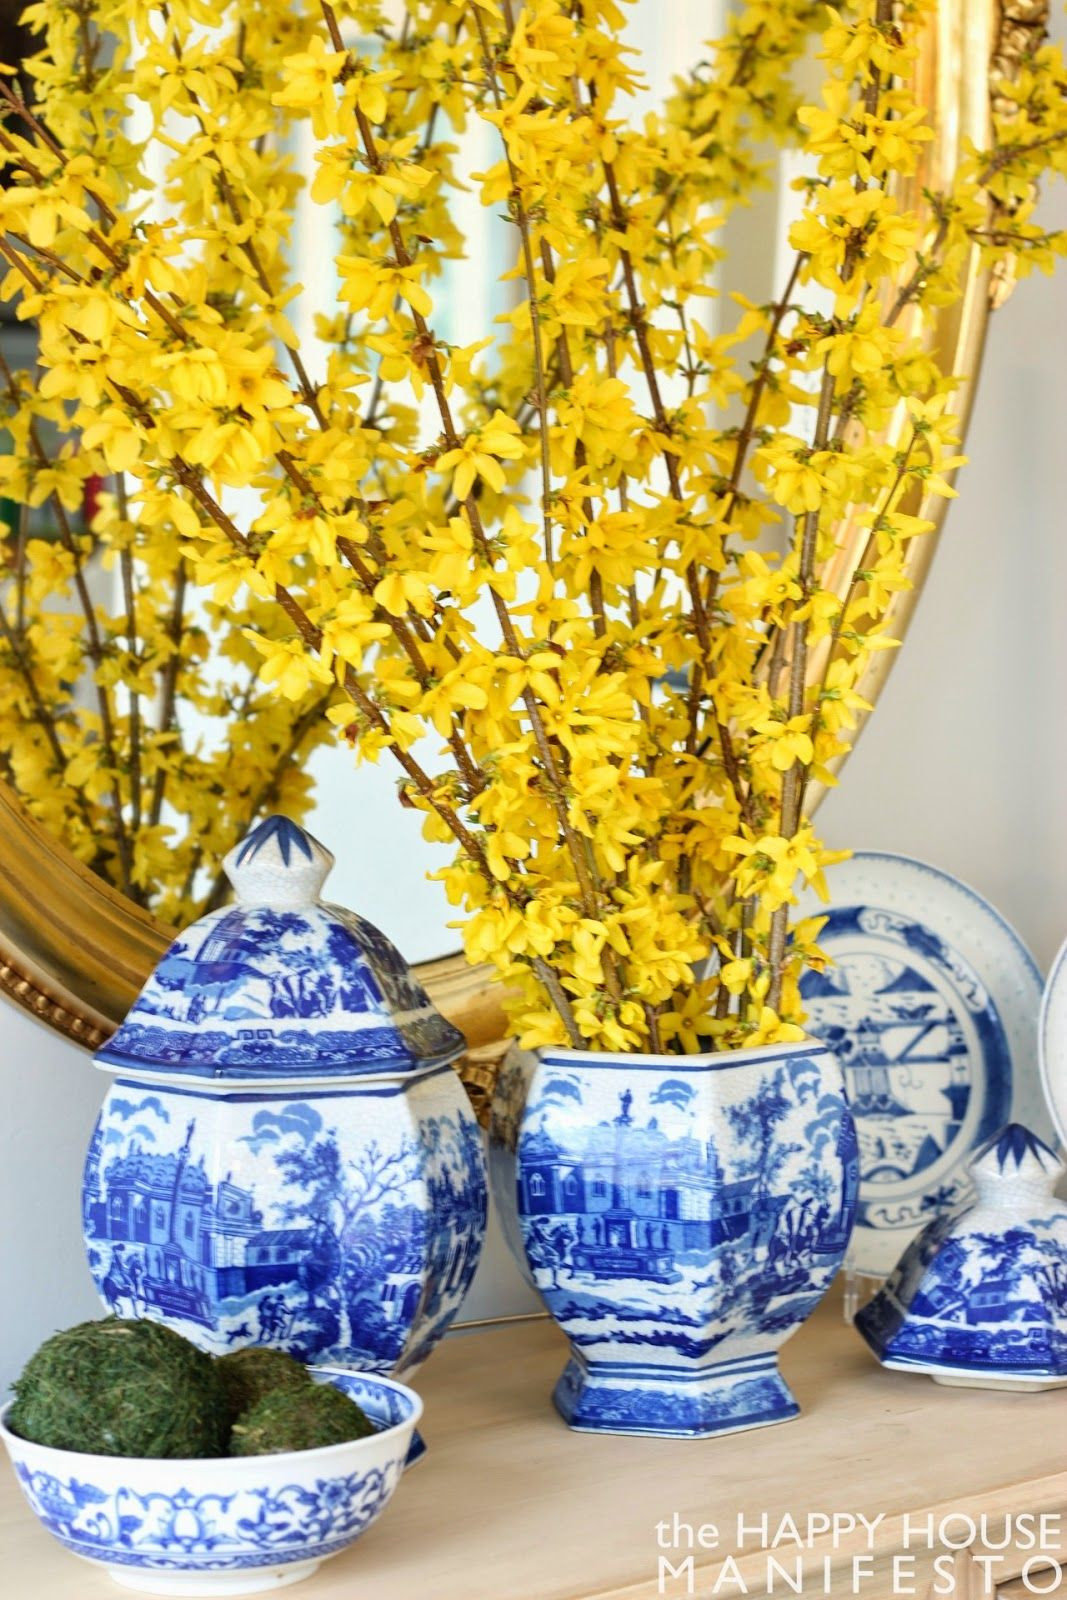 navy blue and white vases of image result for flower arrangements in blue and white ceramic jars pertaining to image result for flower arrangements in blue and white ceramic jars